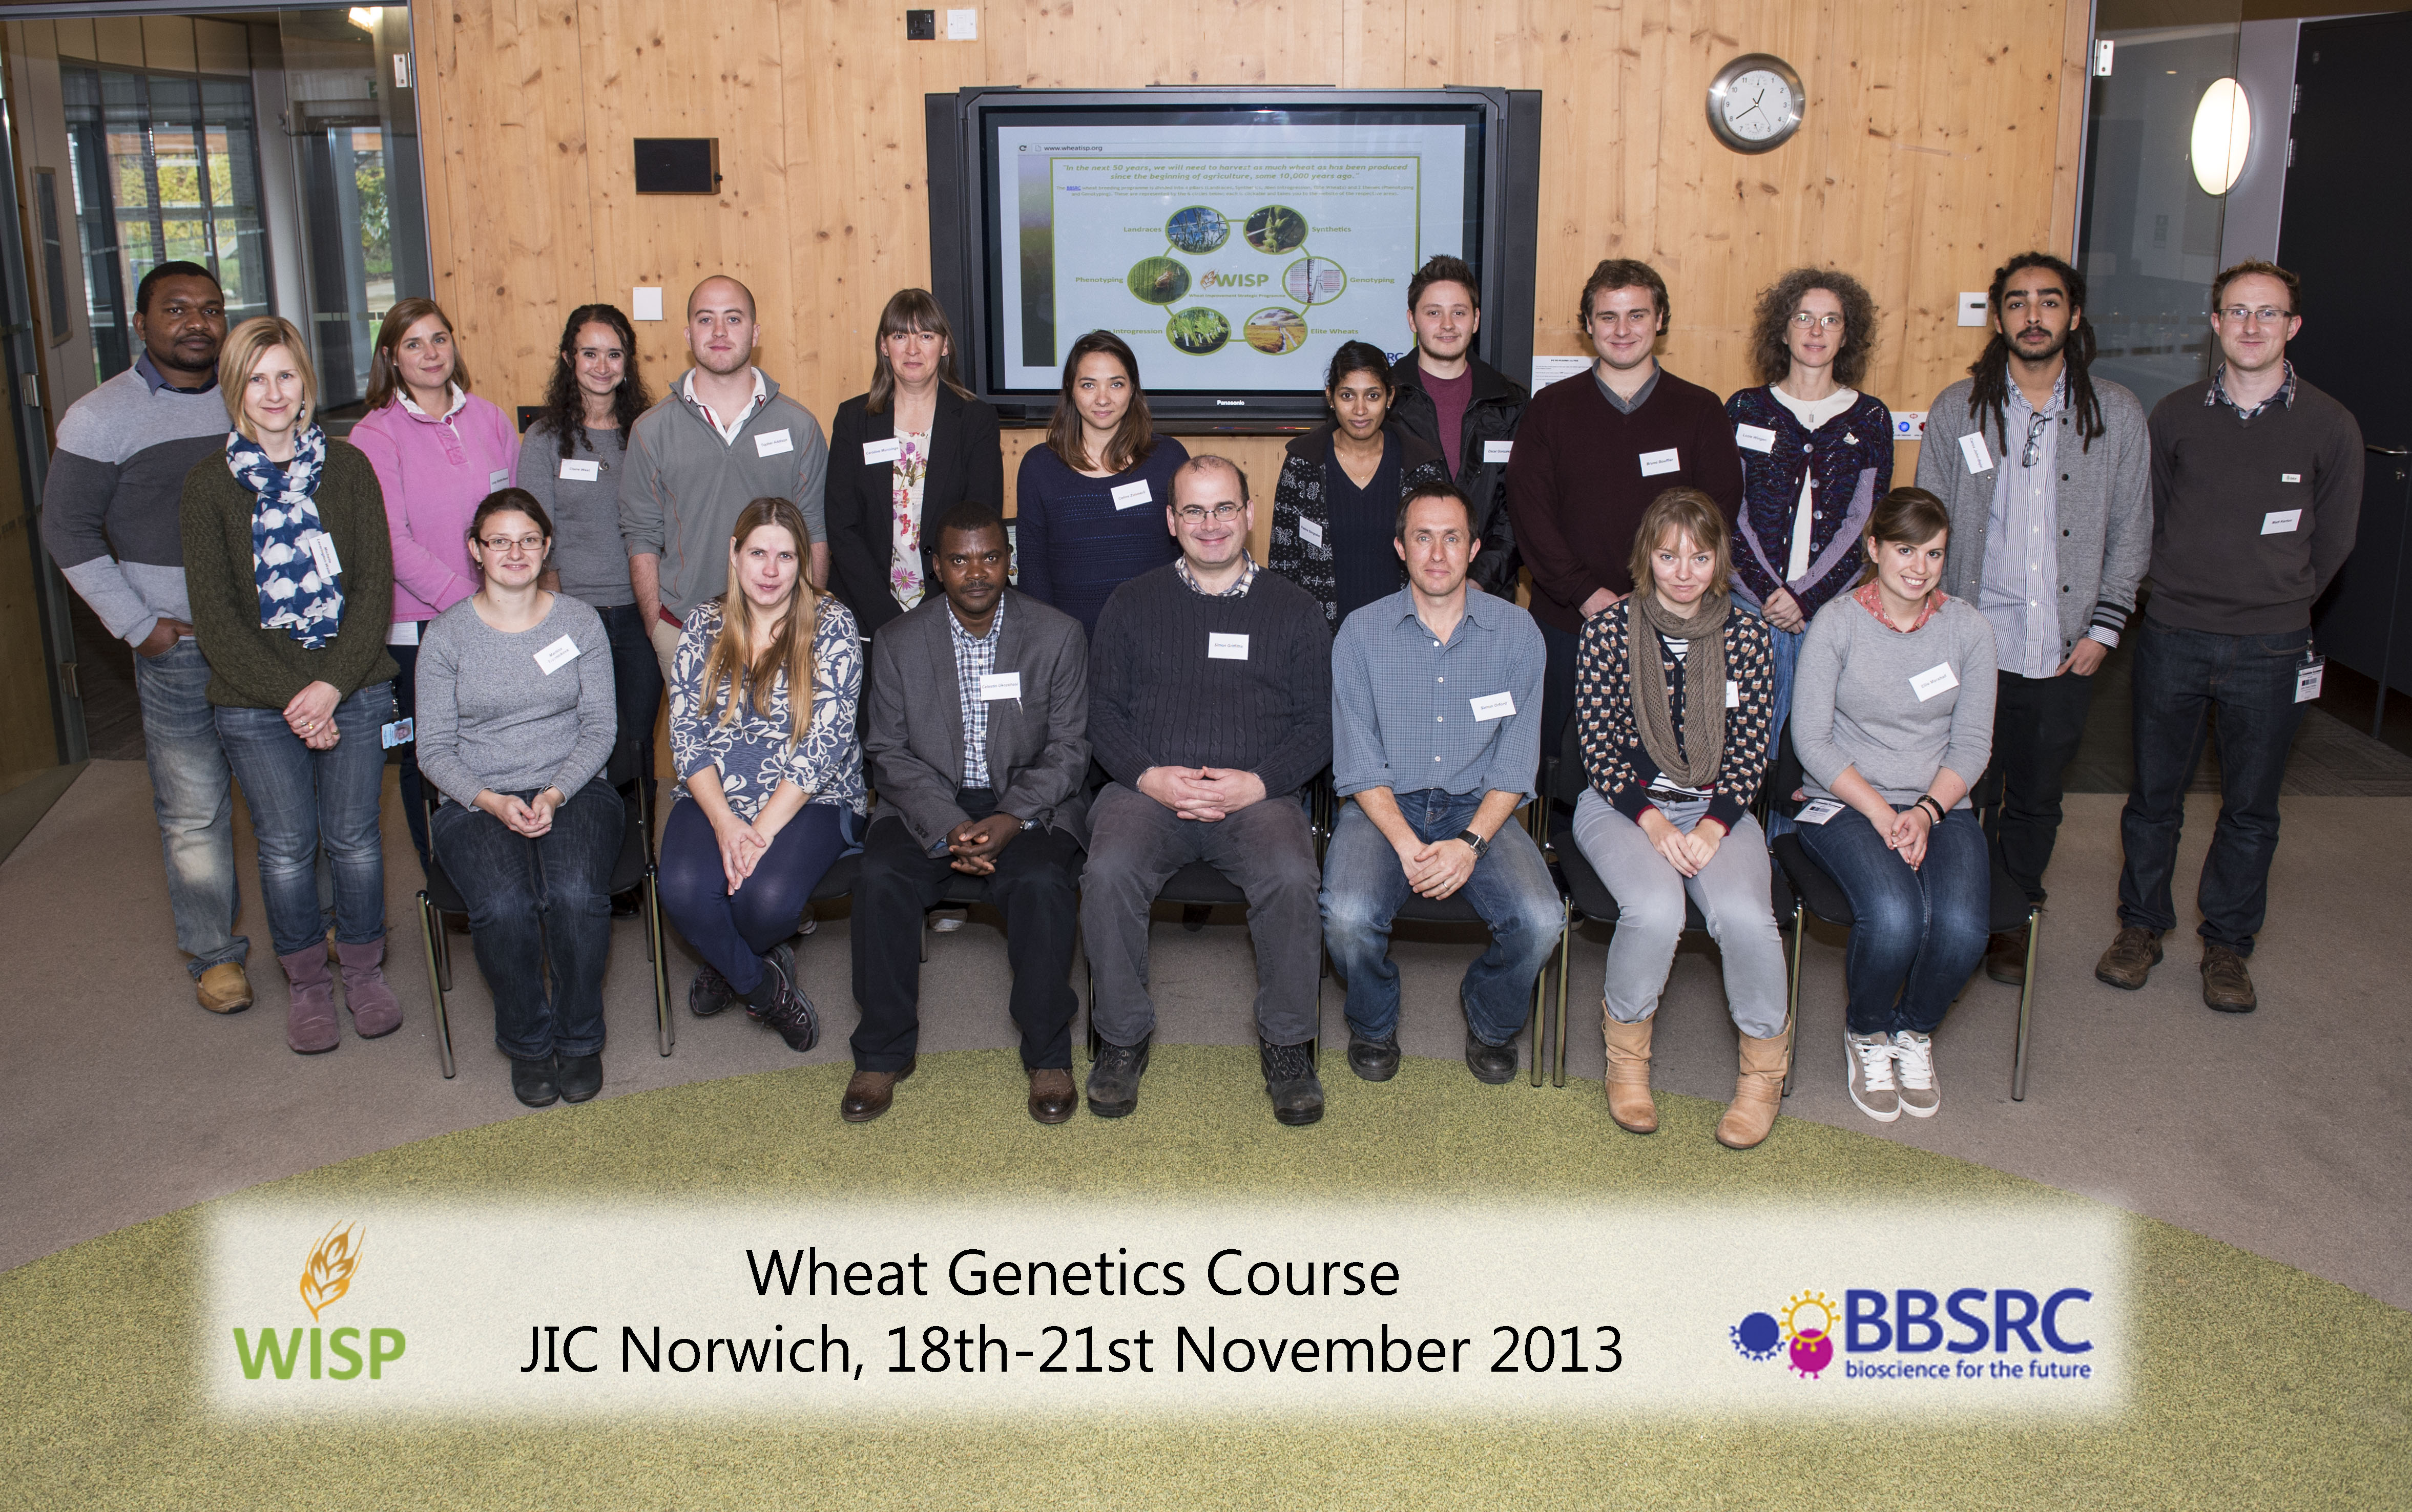 WISP Course Group Photo Nov 2013.JPG